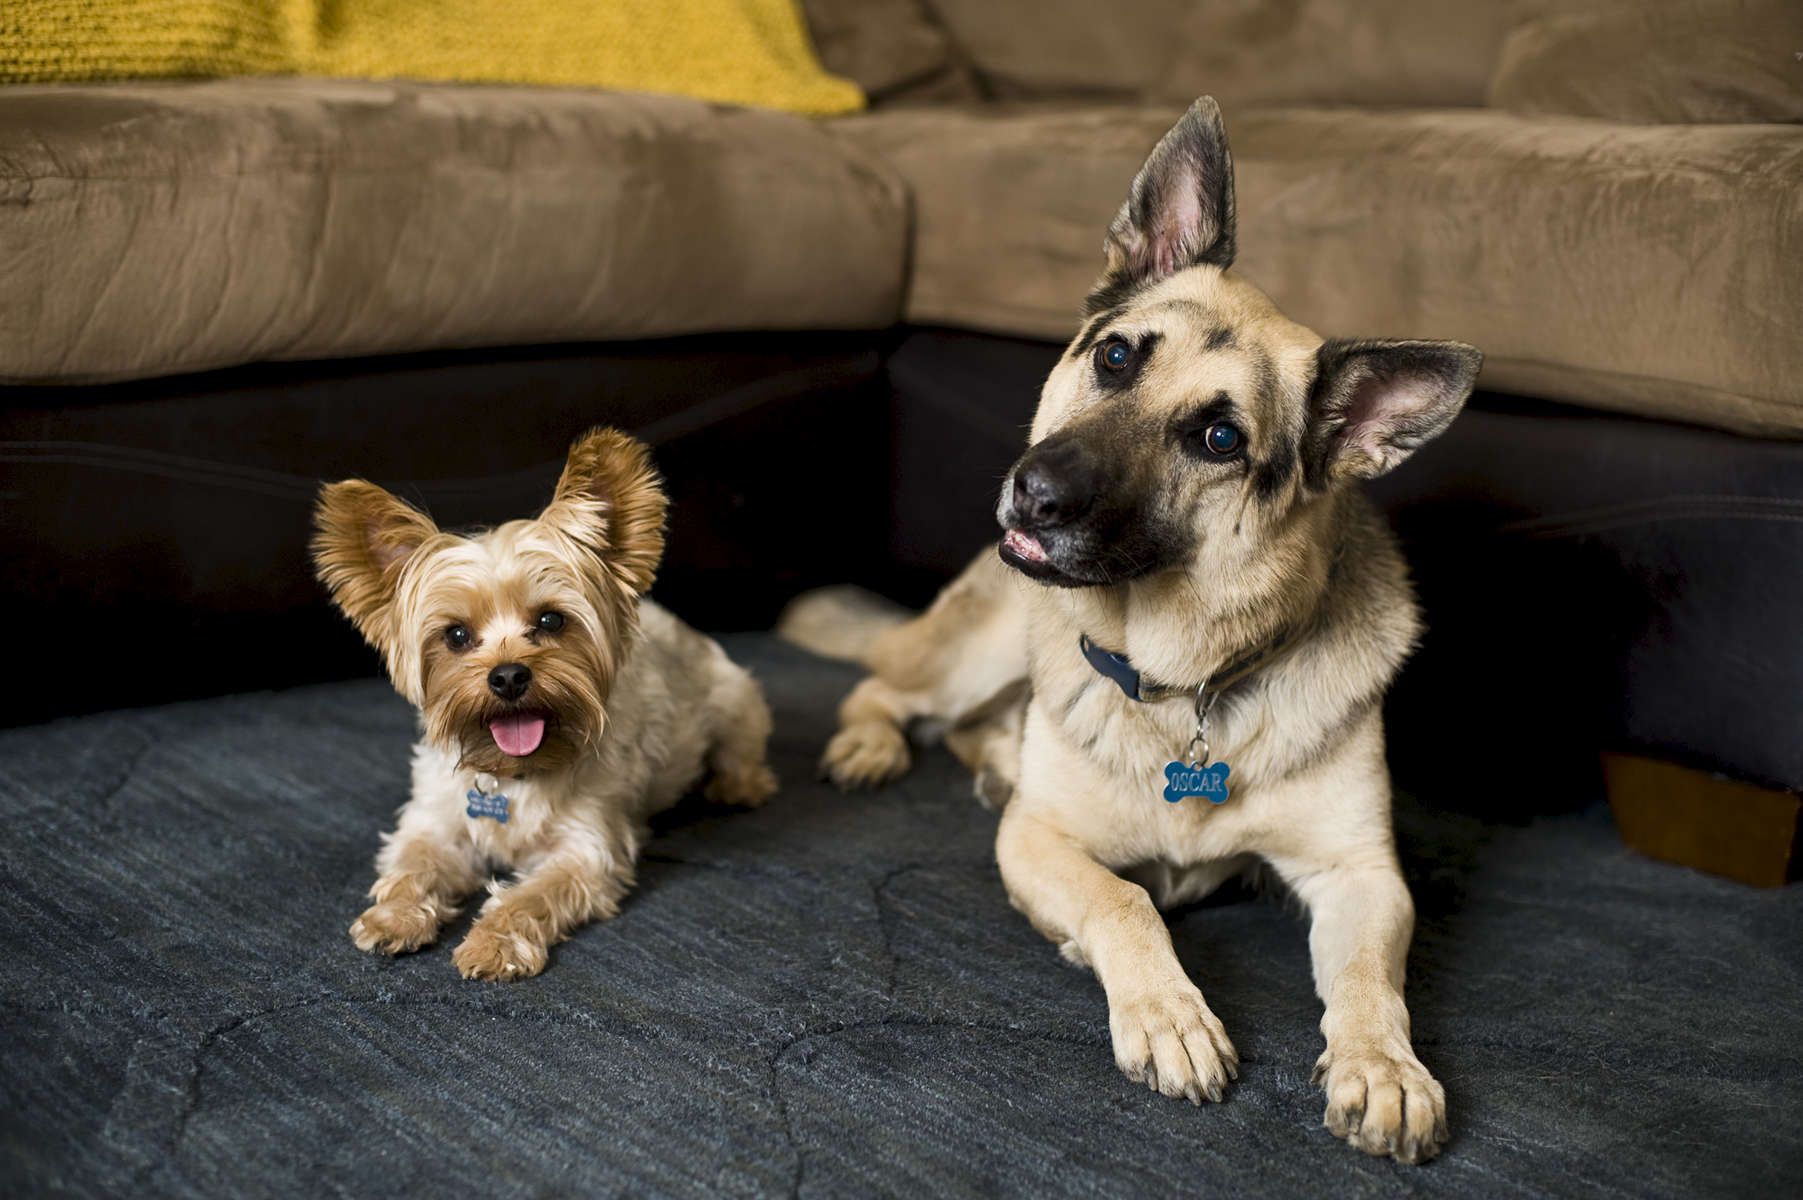 German Shepherd, Oscar Johnsen, 9, lays next to his brother Finn Johnsen, 1, Yorkshire Terrier, from Corona, Calif., on Tuesday, November, 8, 2016 with smiles as they find out they will soon be big brothers for their owners twins due in June 2017.